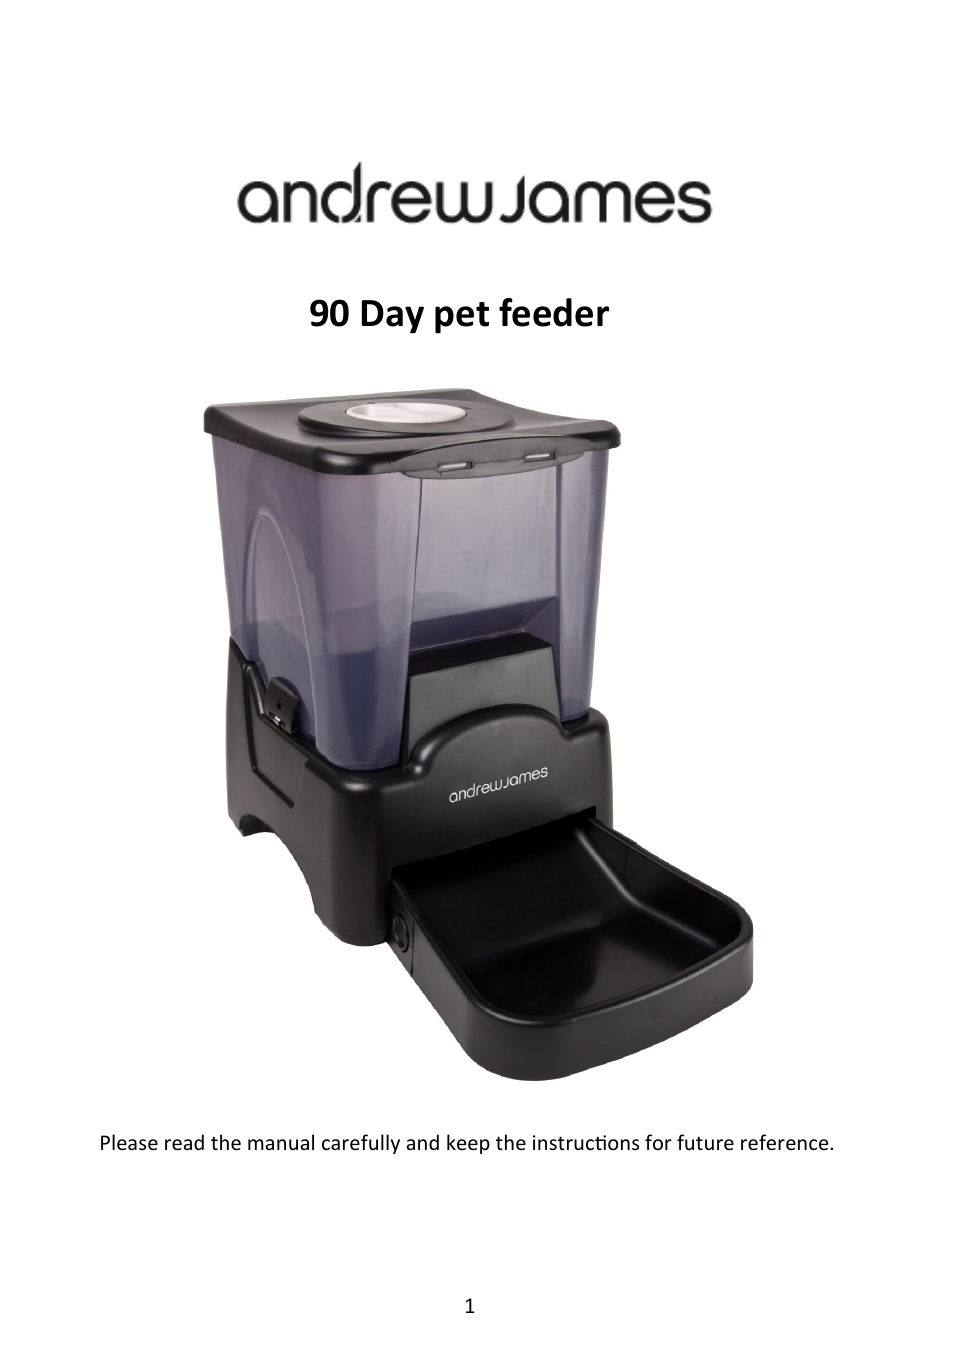 andrew james aj000079 90 day pet feeder user manual 13 pages rh manualsdir com Automatic Pet Feeder with Timer andrew james automatic pet feeder manual